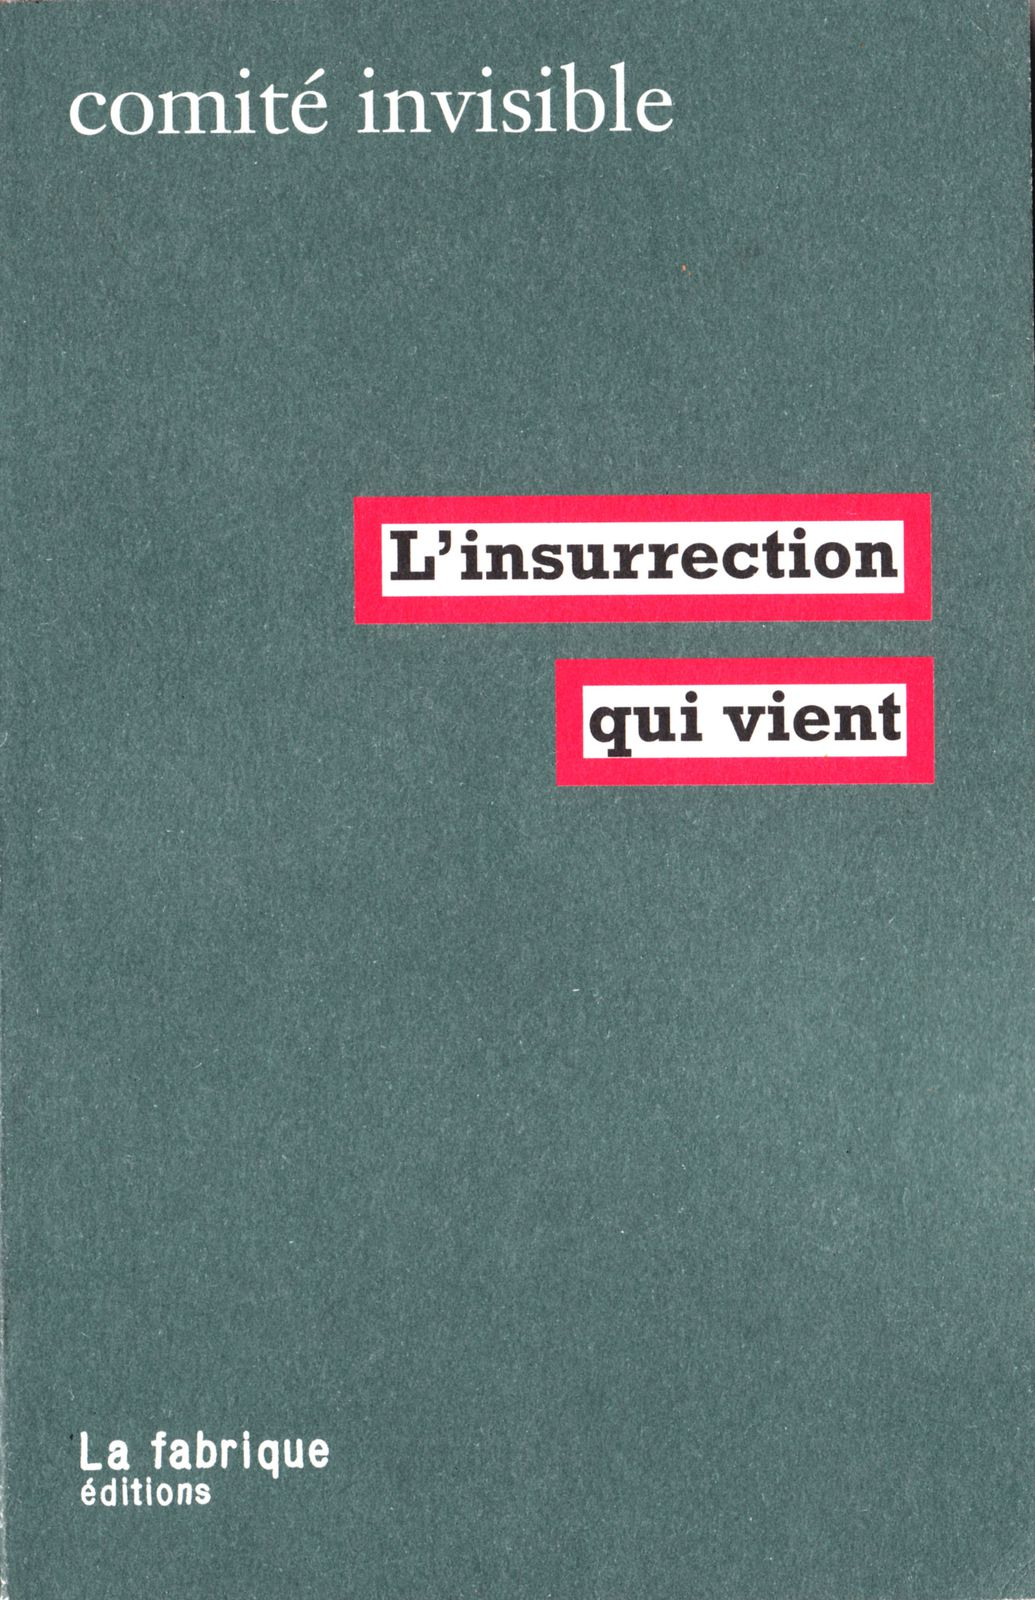 http://a35.idata.over-blog.com/1/90/56/67/Blog---Suite-0/L-insurrection-qui-vient.jpg